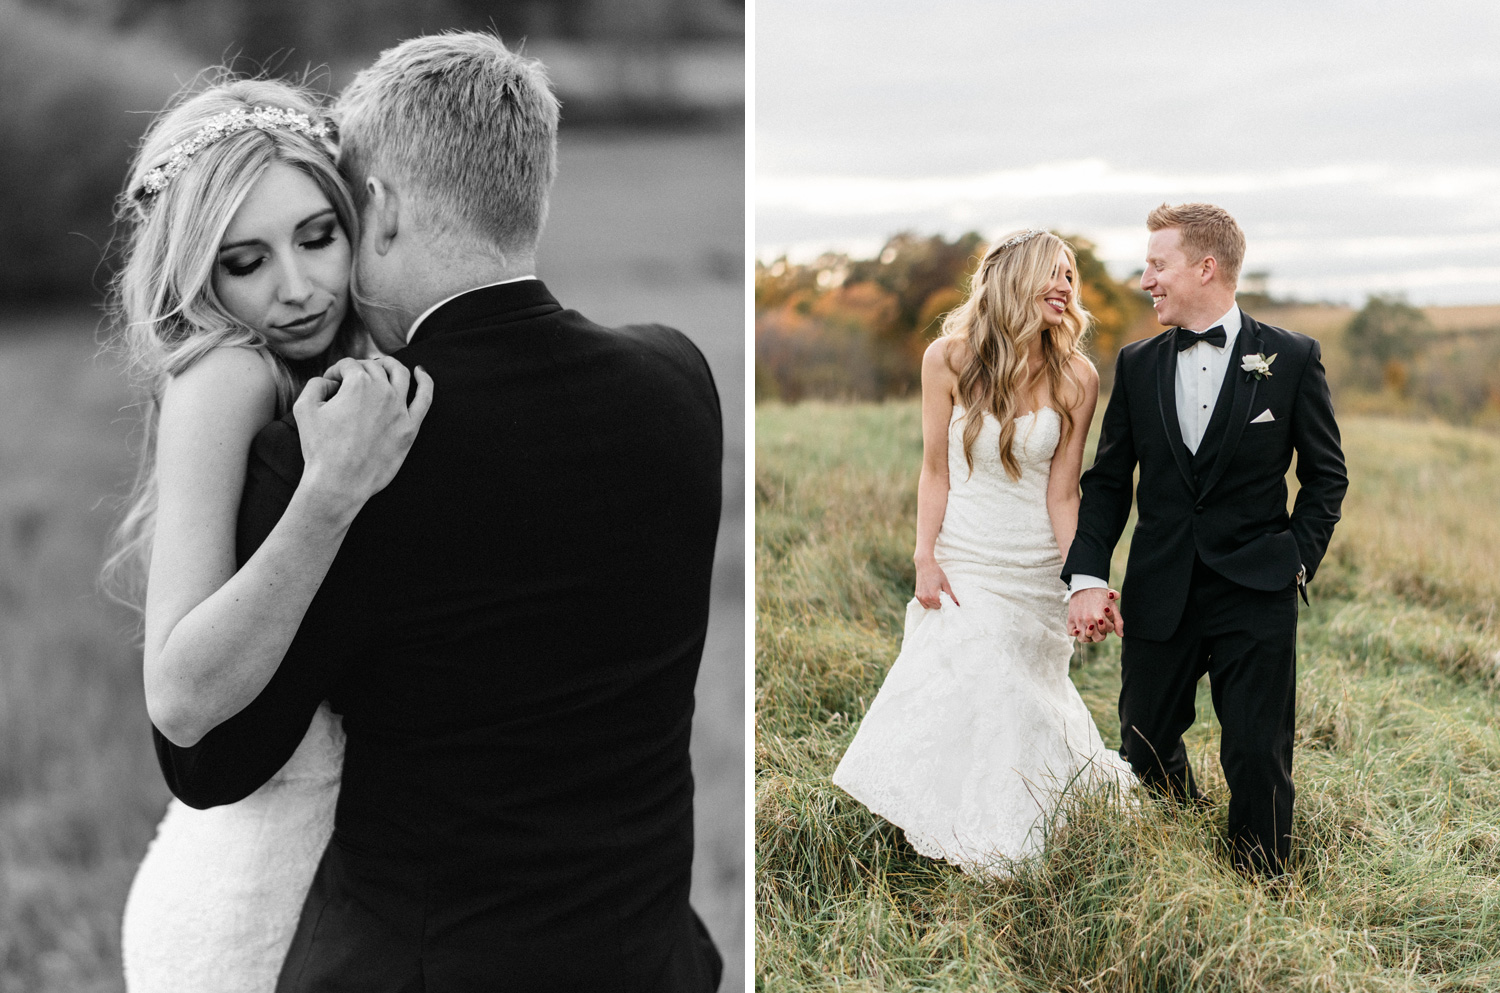 Bride and Groom Portraits at Birch Hill Barn by Geneoh Photography